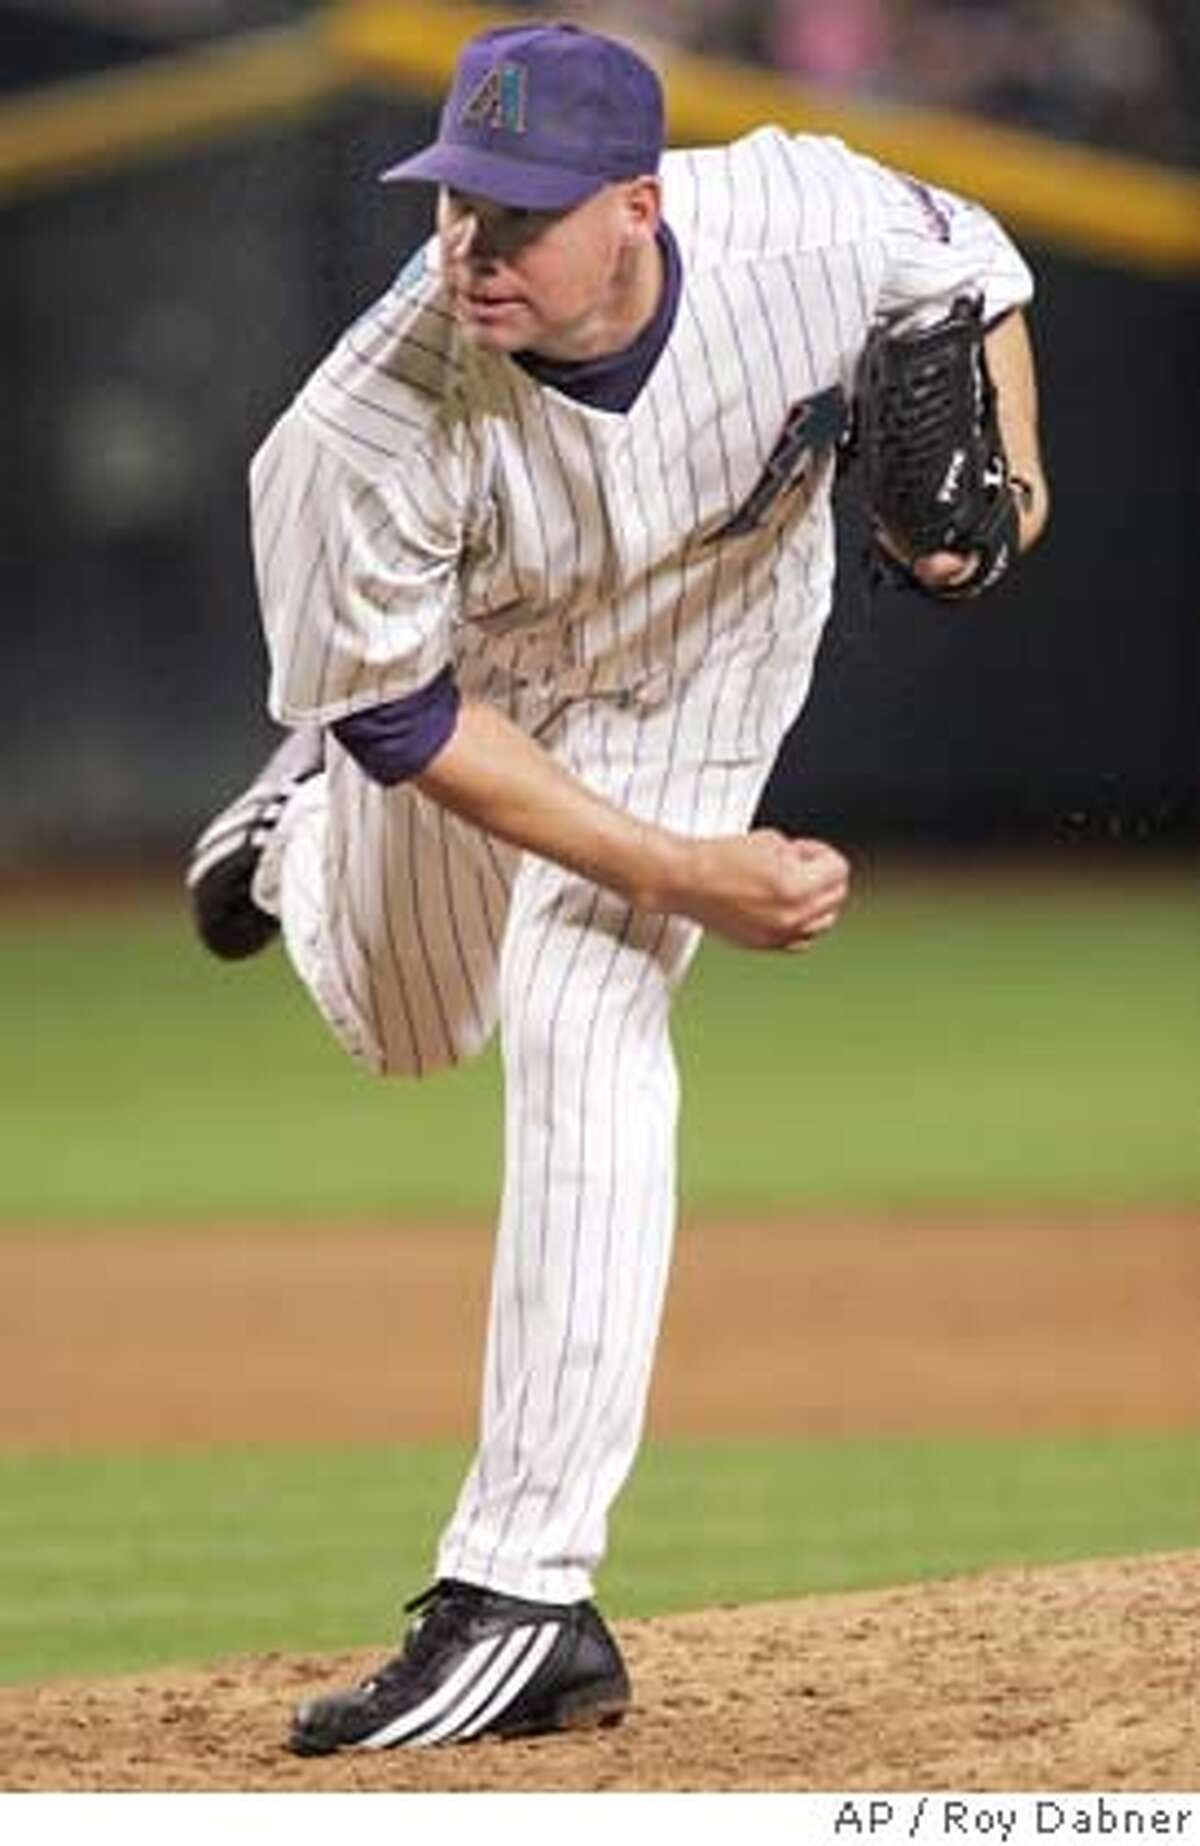 Jason Grimsley follows through on a pitch during a game in Phoenix last month. Associated Press photo by Roy Dabner